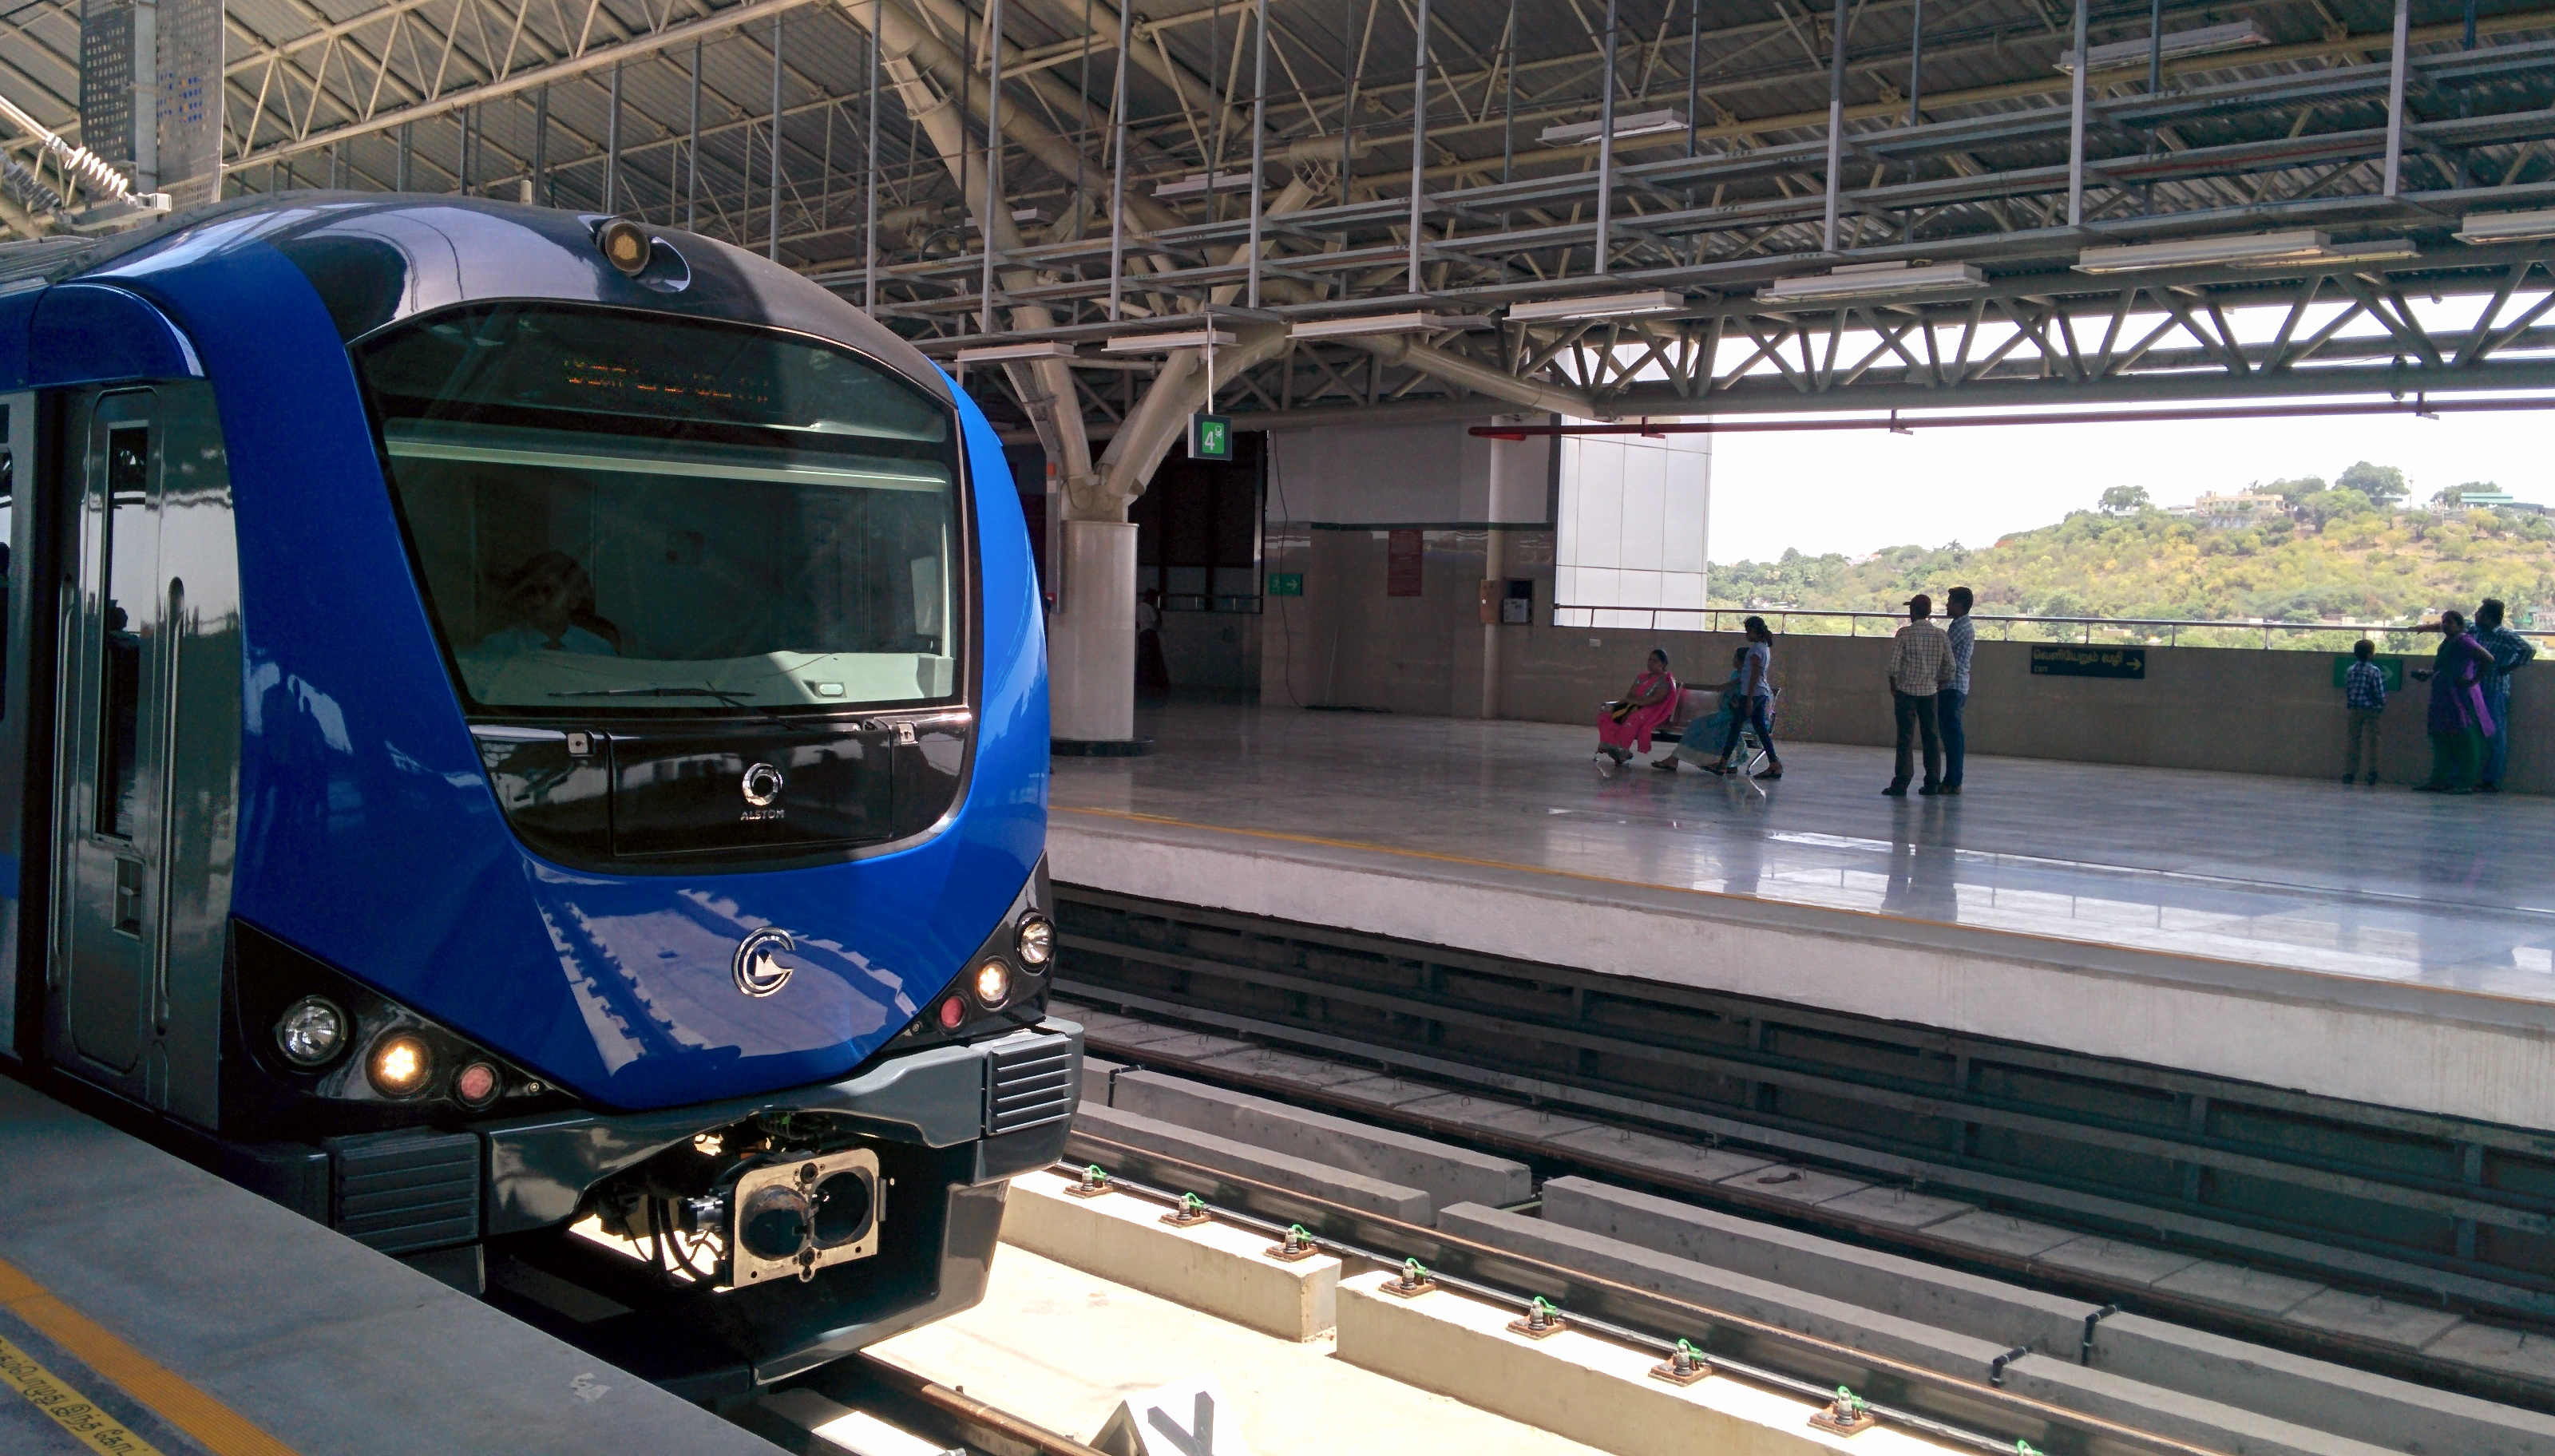 Delhi-Meerut RRTS look unveiled on Friday; Will cut Delhi-Meerut travel time to 1/3